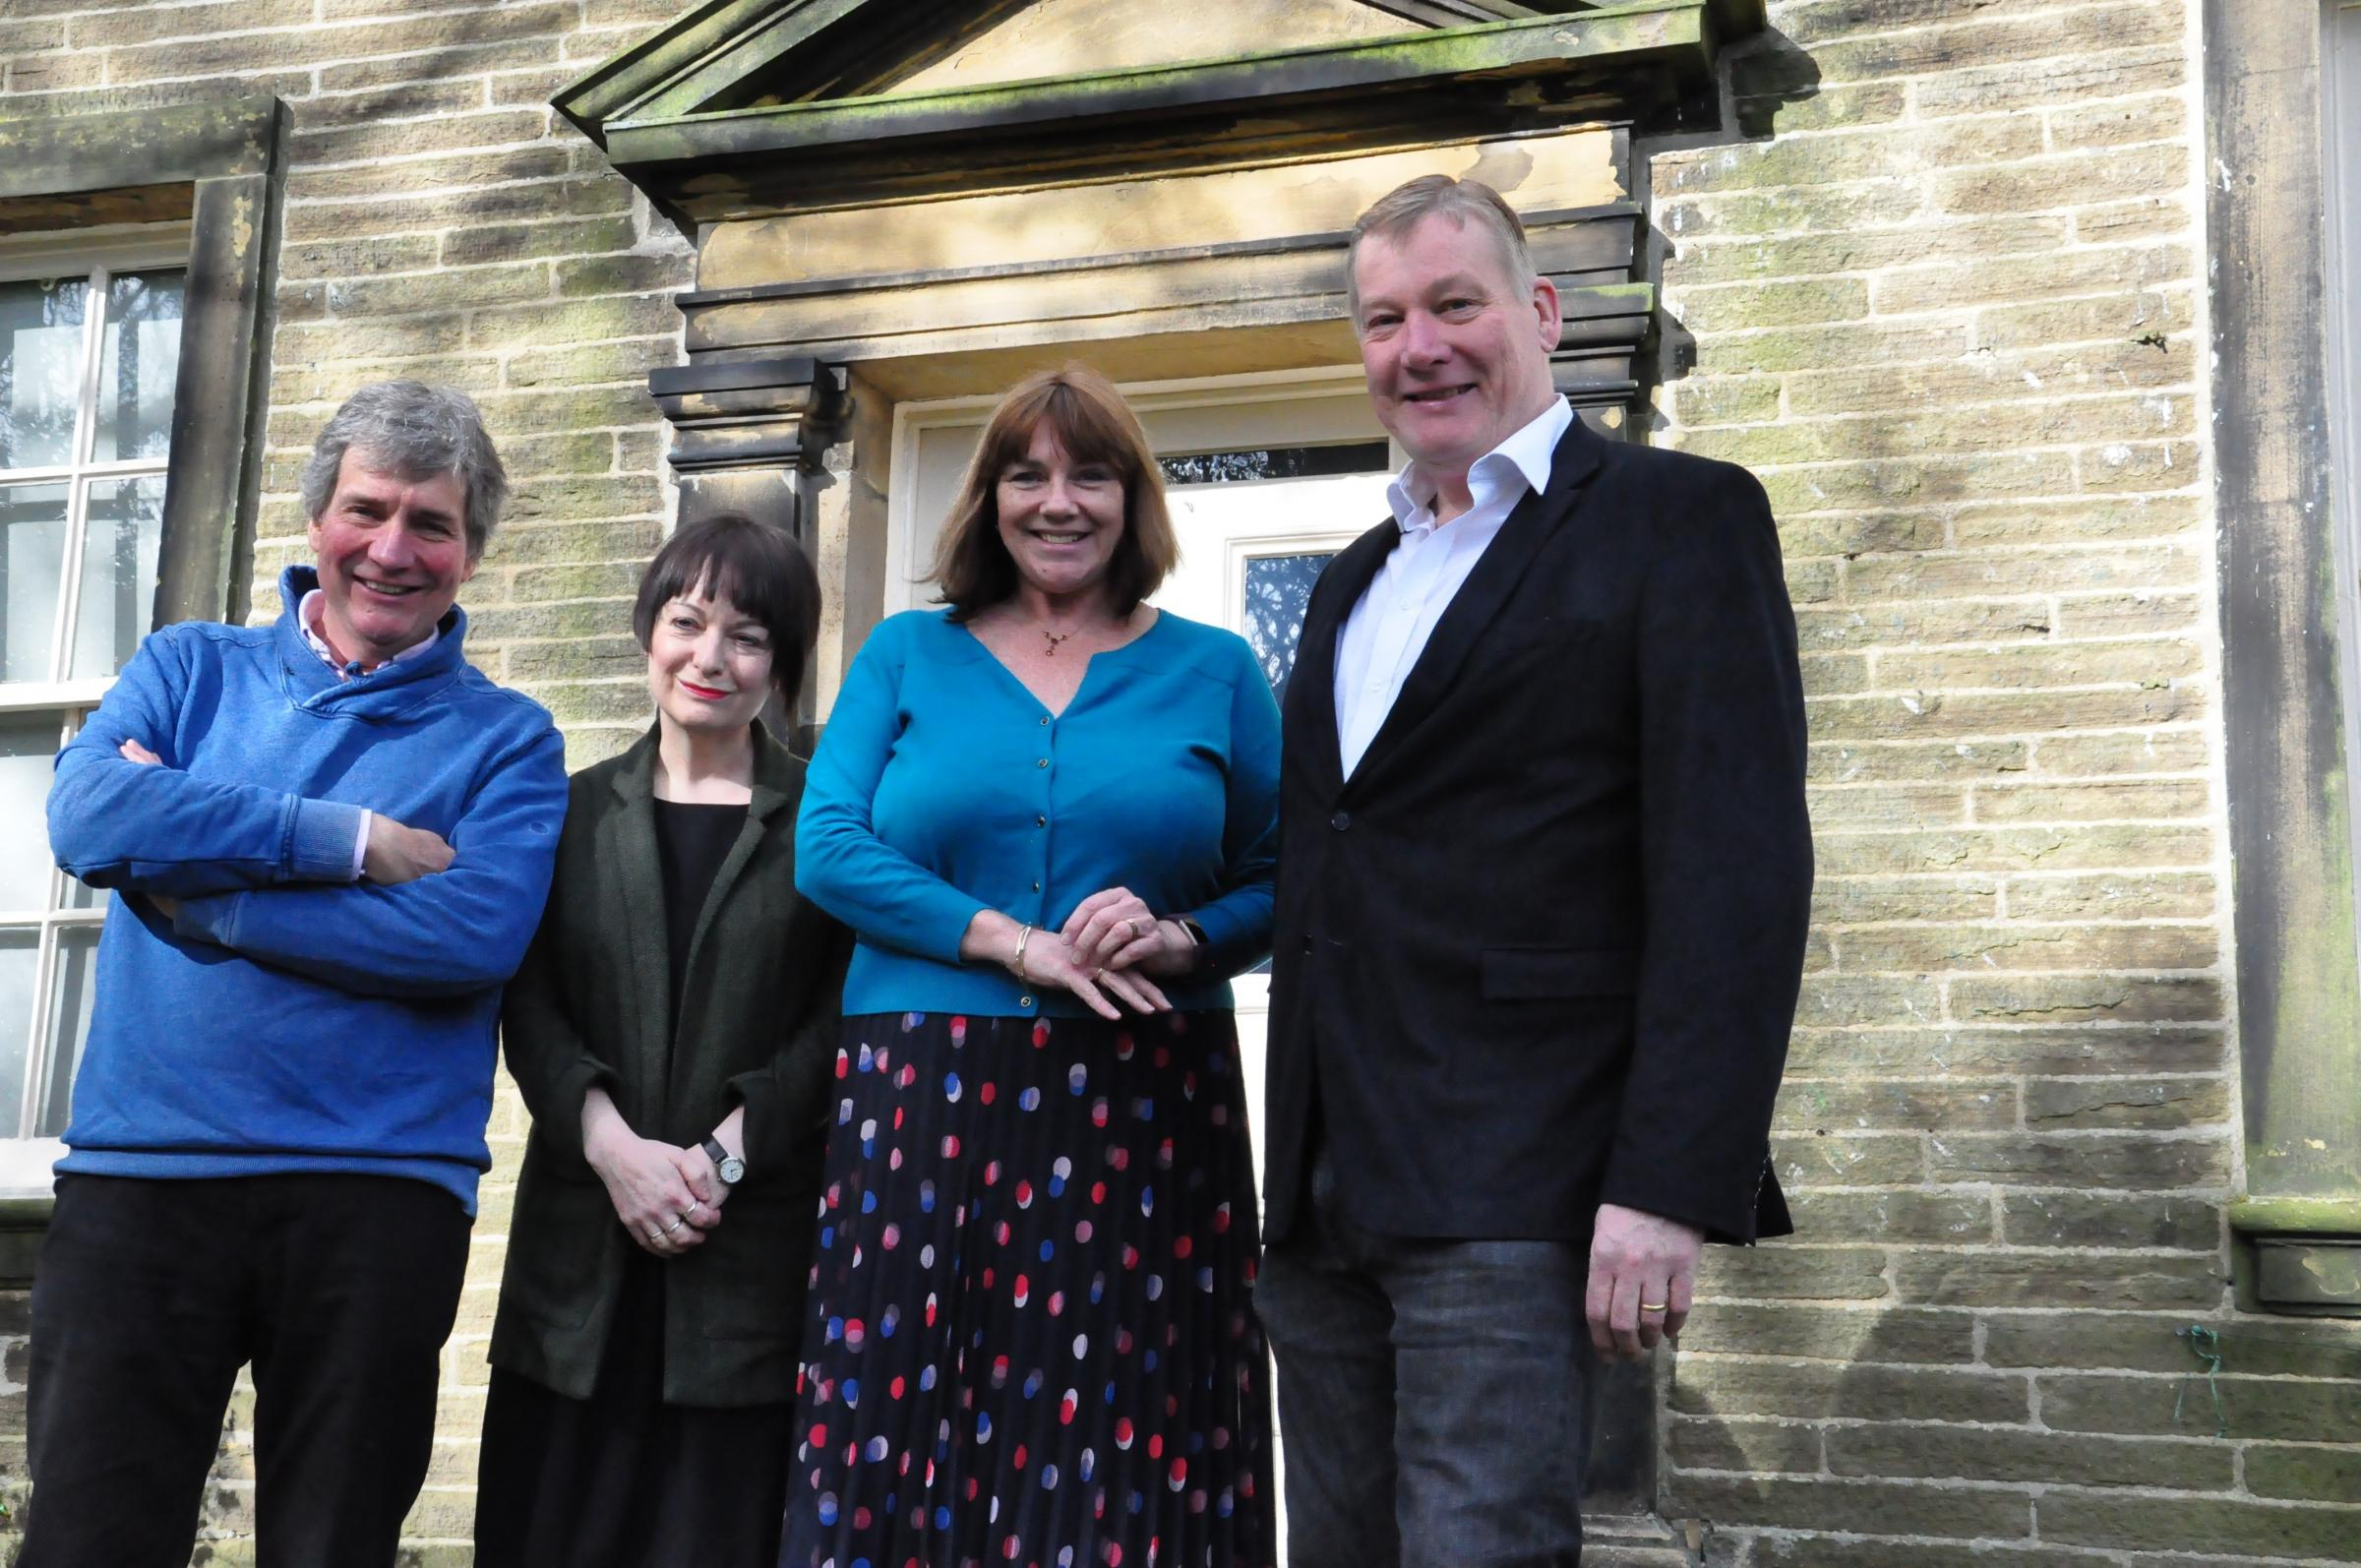 Keighley MP Kris Hopkins, right, during a visit to the Brontë Parsonage Museum, pictured with, from left, John Thirlwell, chairman of the Bronte Society, Ann Dinsdale, curator and librarian, and Kitty Wright, executive director of the Bronte Parsonage Mu